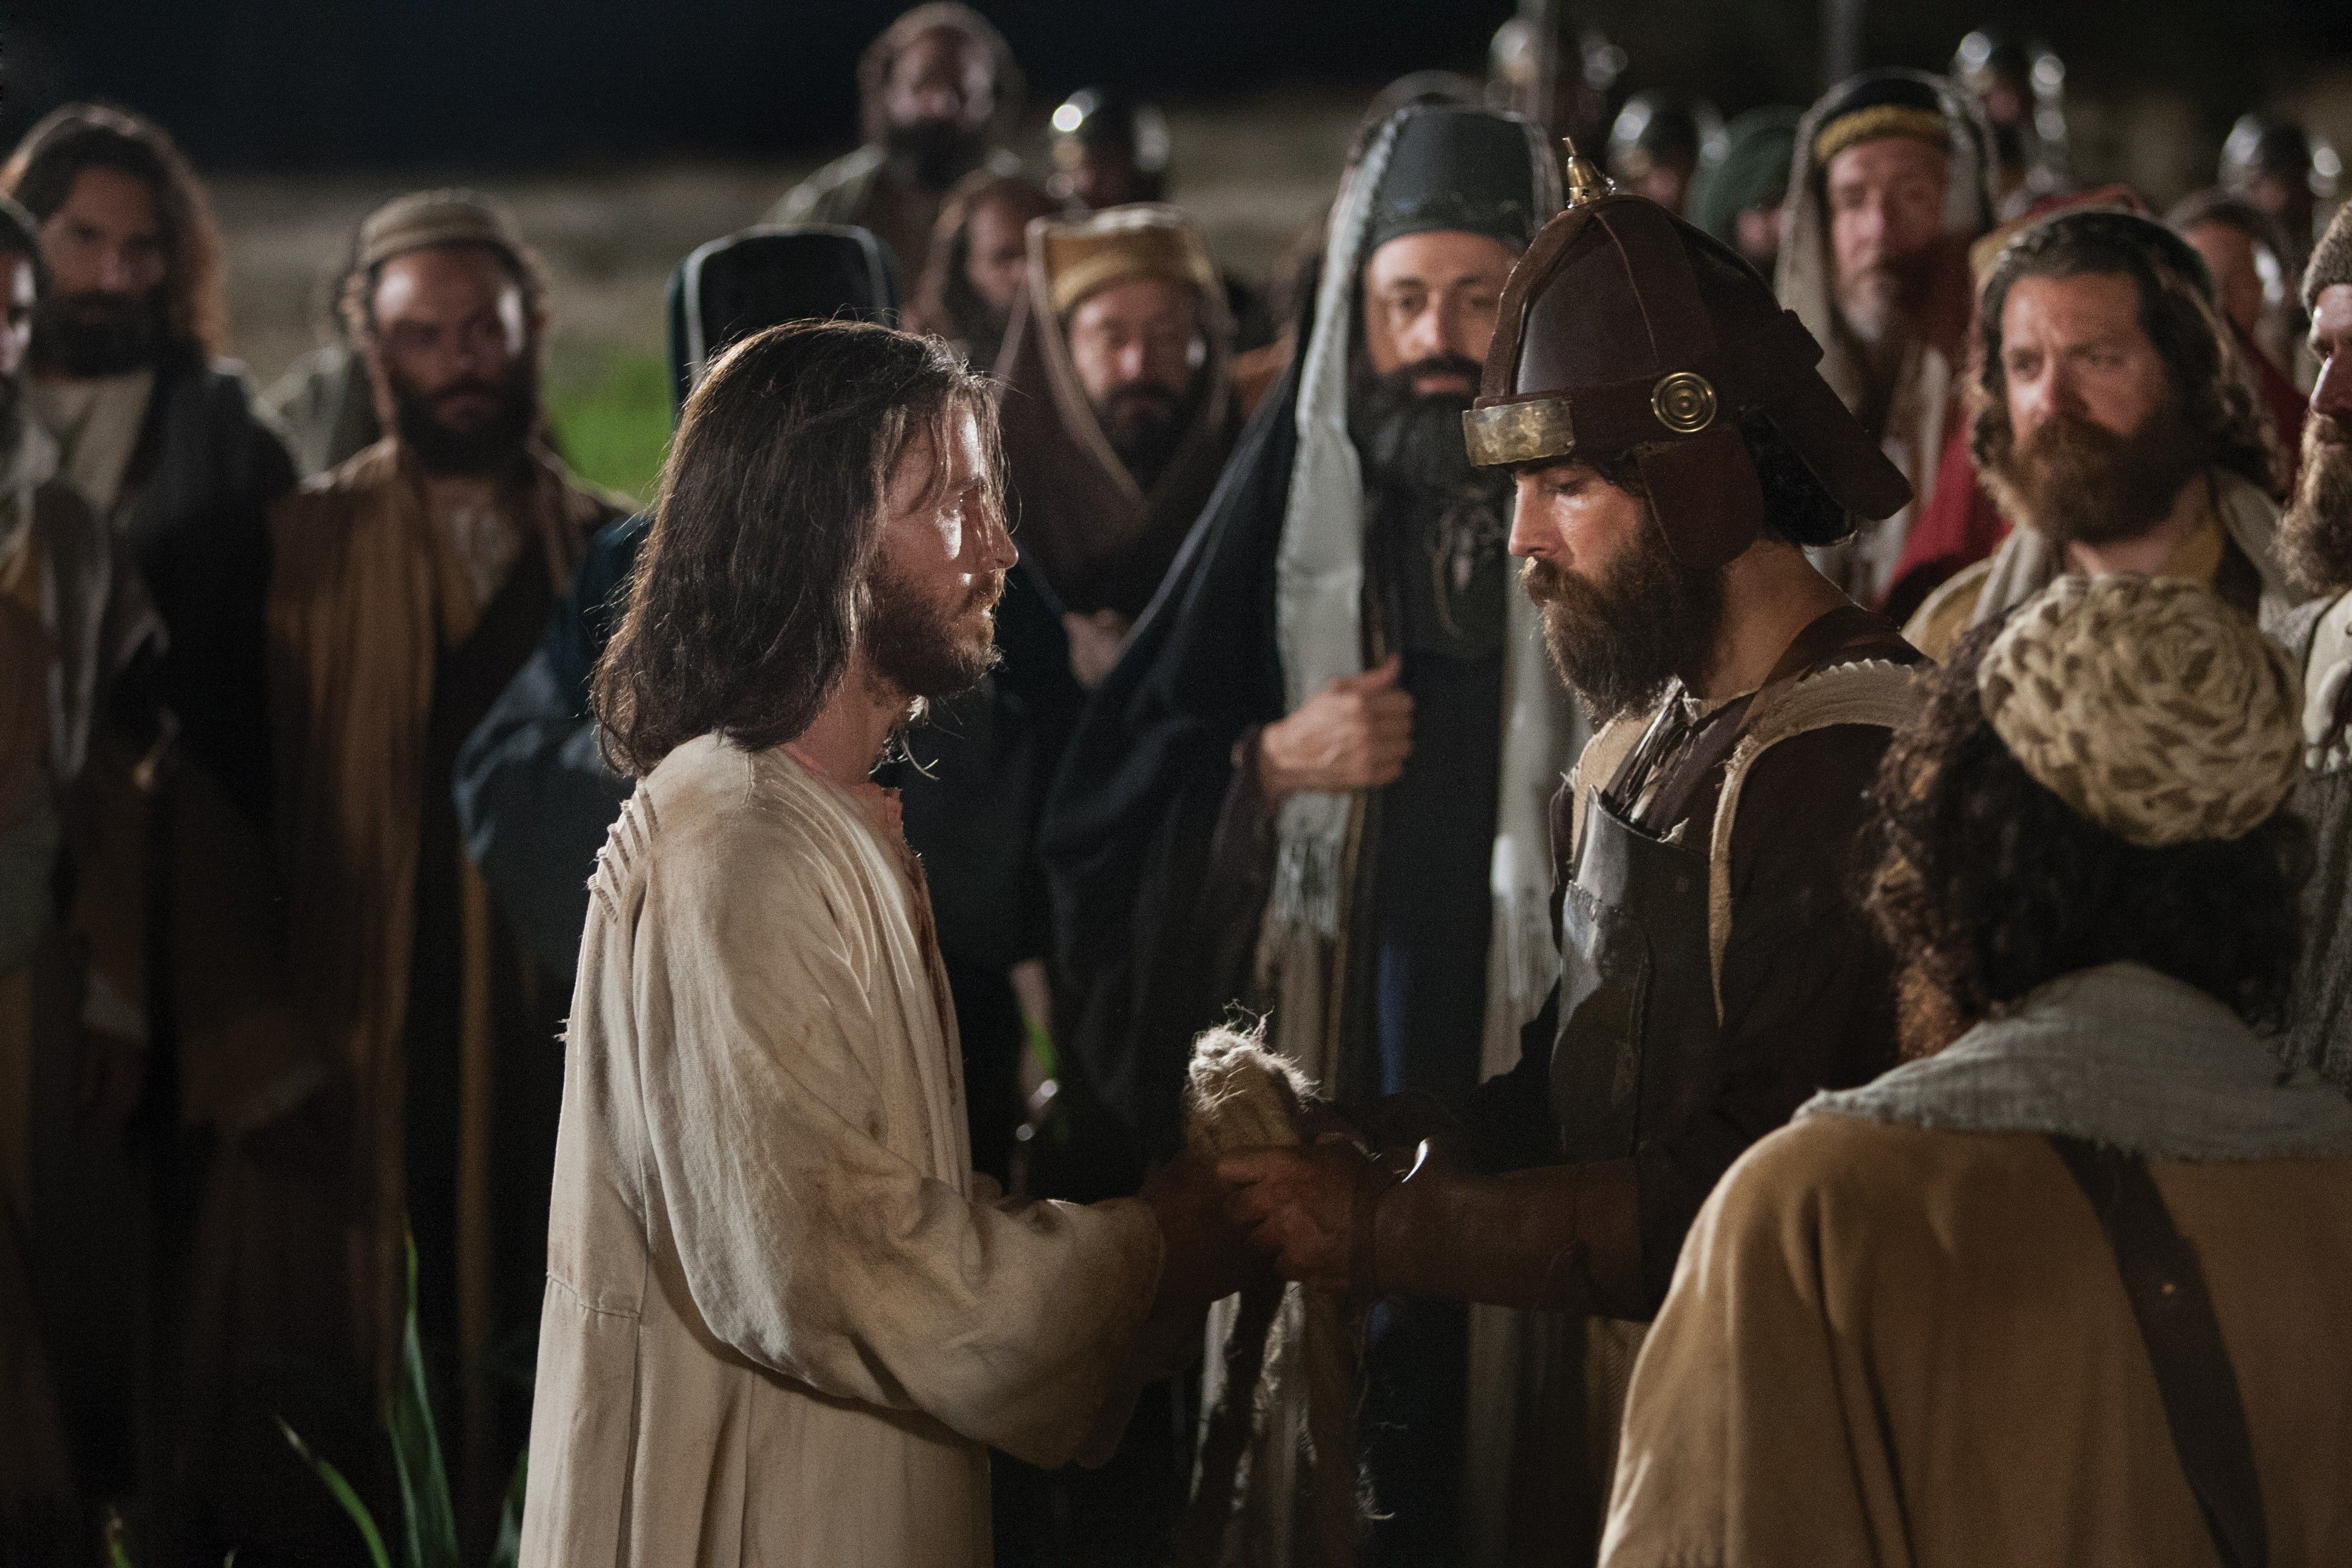 Matthew 26:36–56, Christ arrested by a group of soldiers